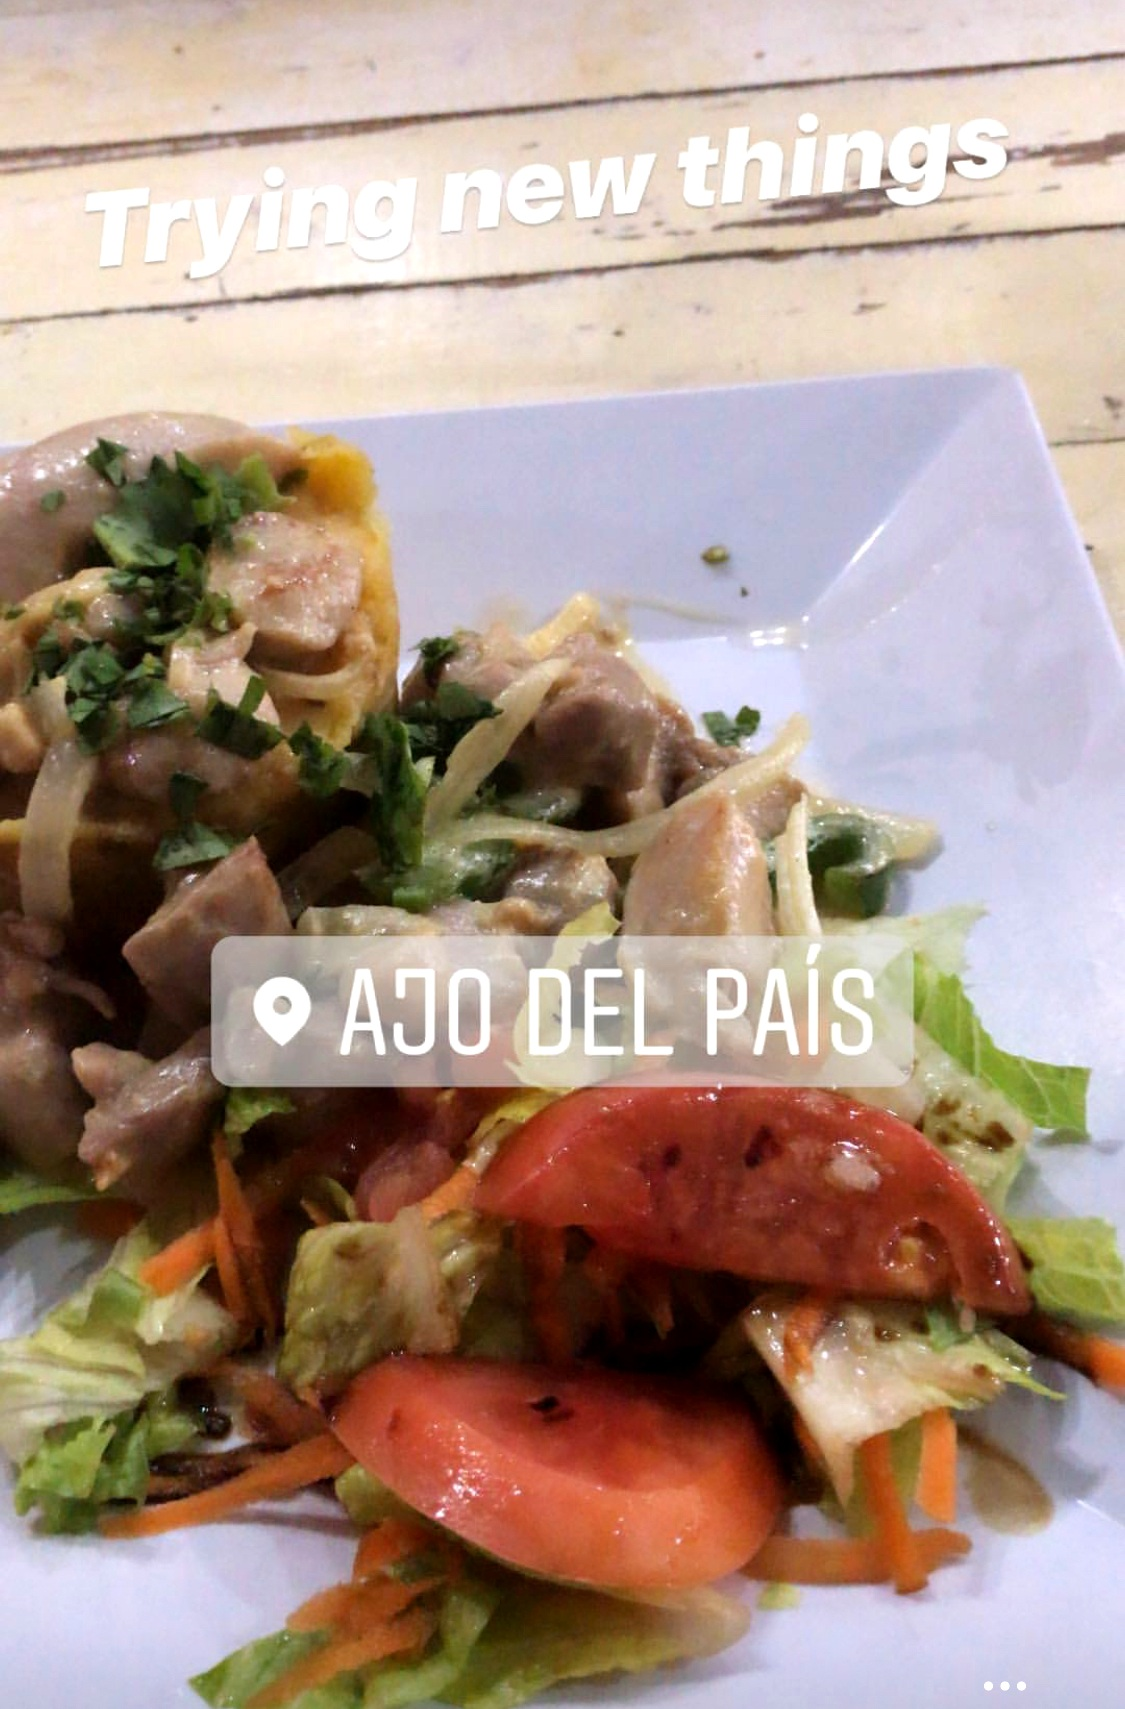 AJO DEL PAIS - I went here on a day where I was site seeing in Old San Juan and wanted to grab some food before I fainted from hunger. I tried a dish called Mofongo which is a Puerto Rican dish with fried plantains as its main ingredient. It wasn't my favorite only because it was very dense and heavy but I am glad that I tried it!